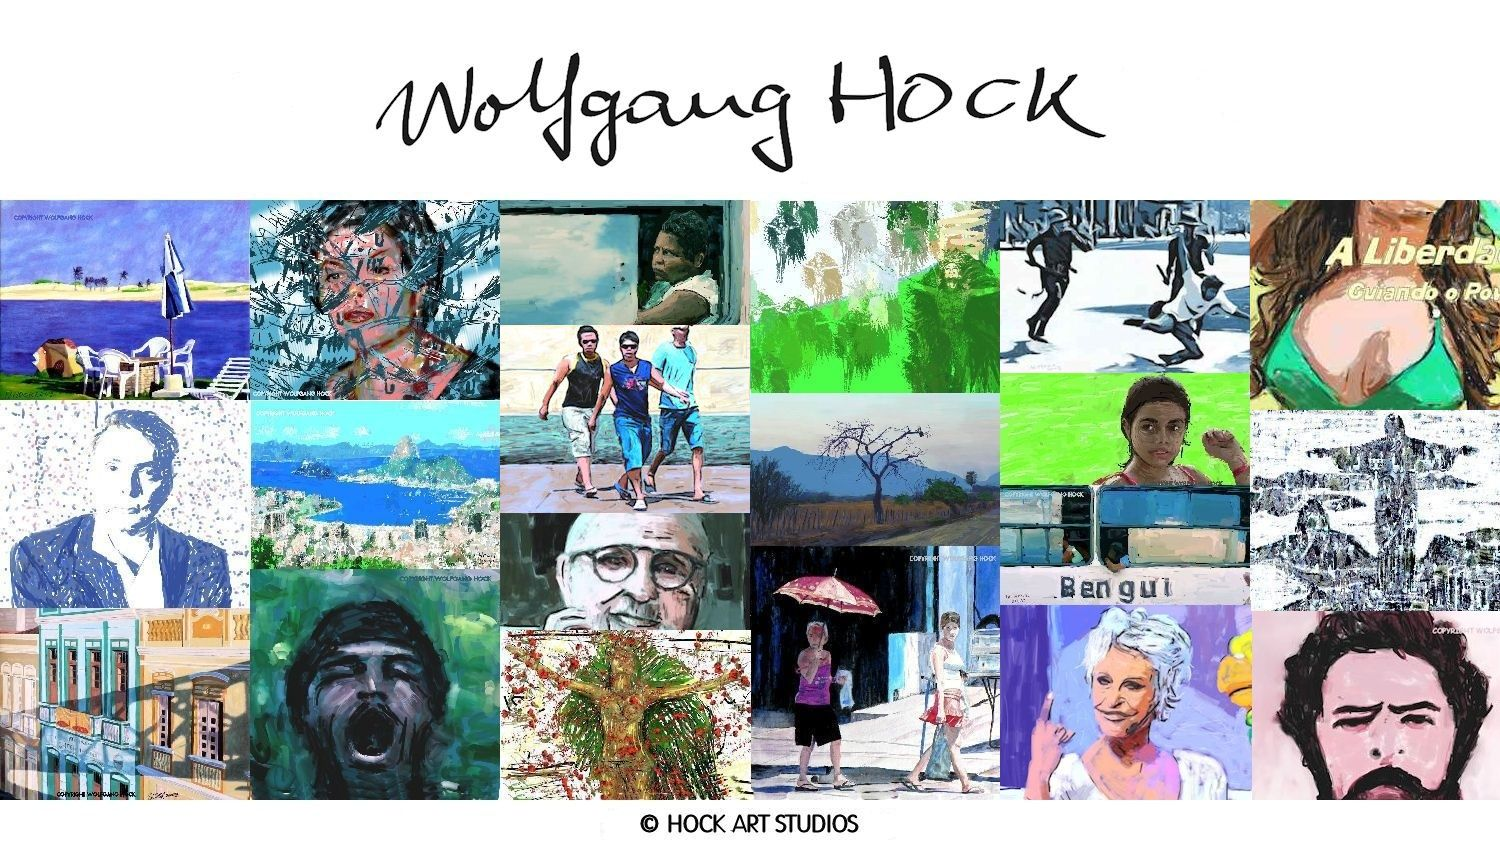 Now hock art studios are represented by